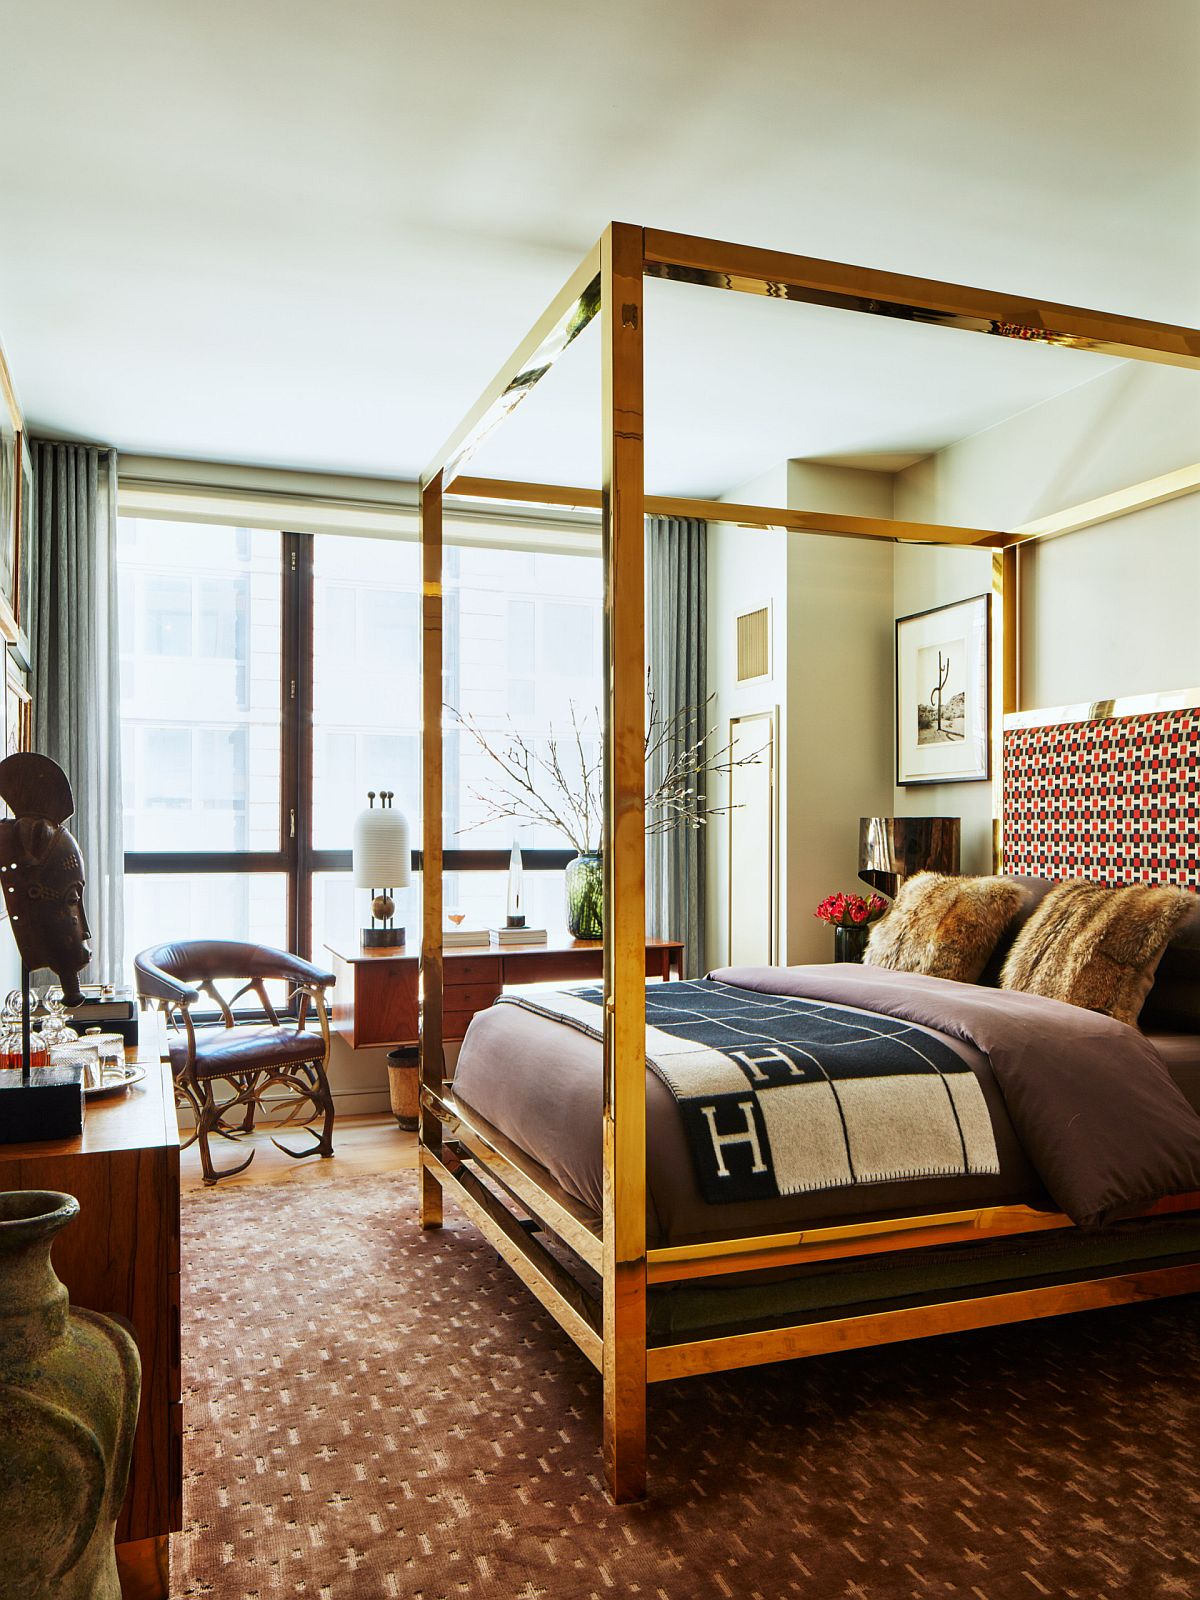 Four-poster bed with a golden metallic frame makes a statement inside this modern eclectic bedroom